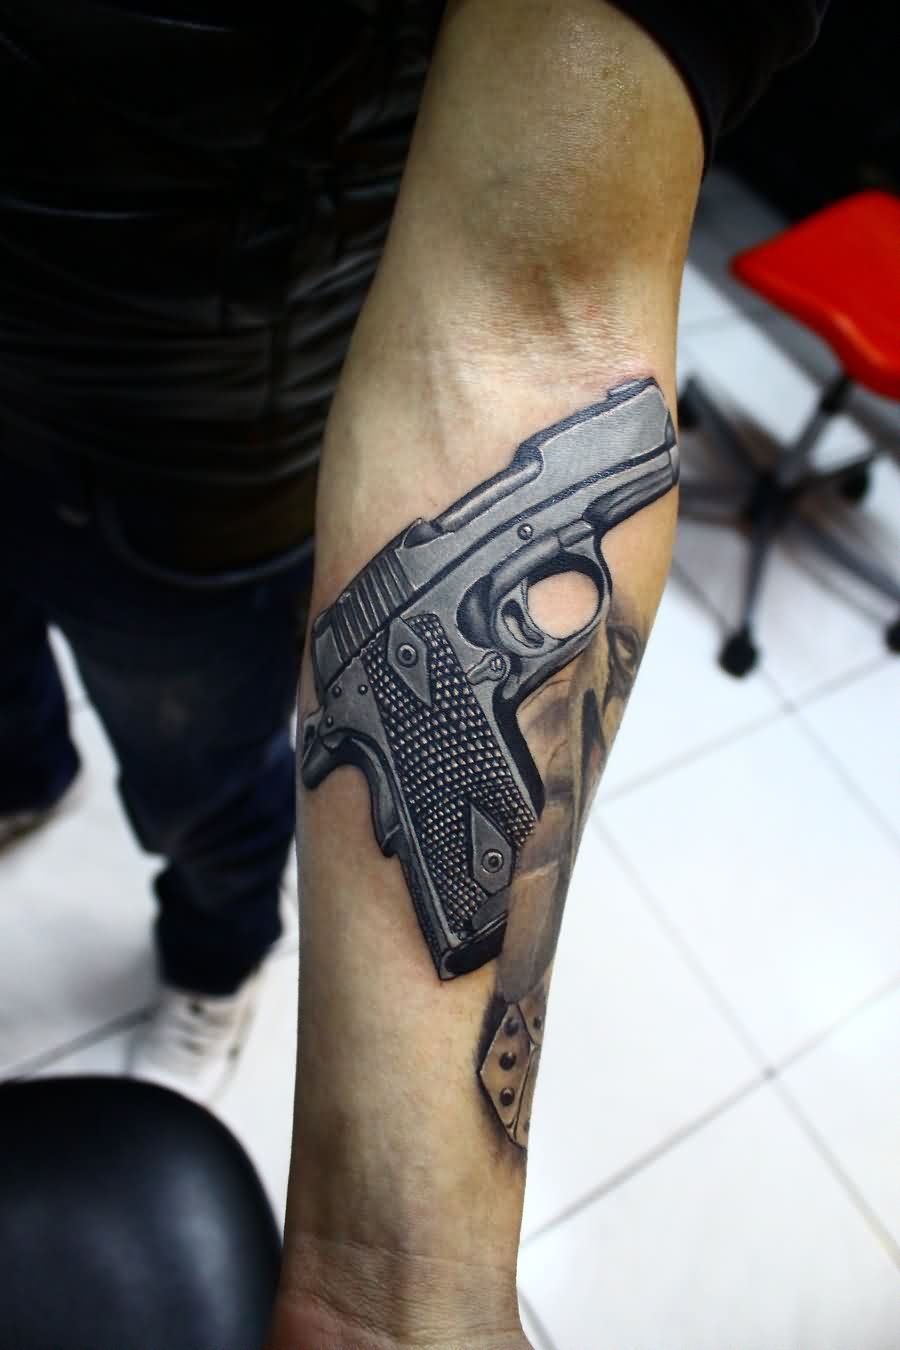 Realistic Gun Tattoo On Arm